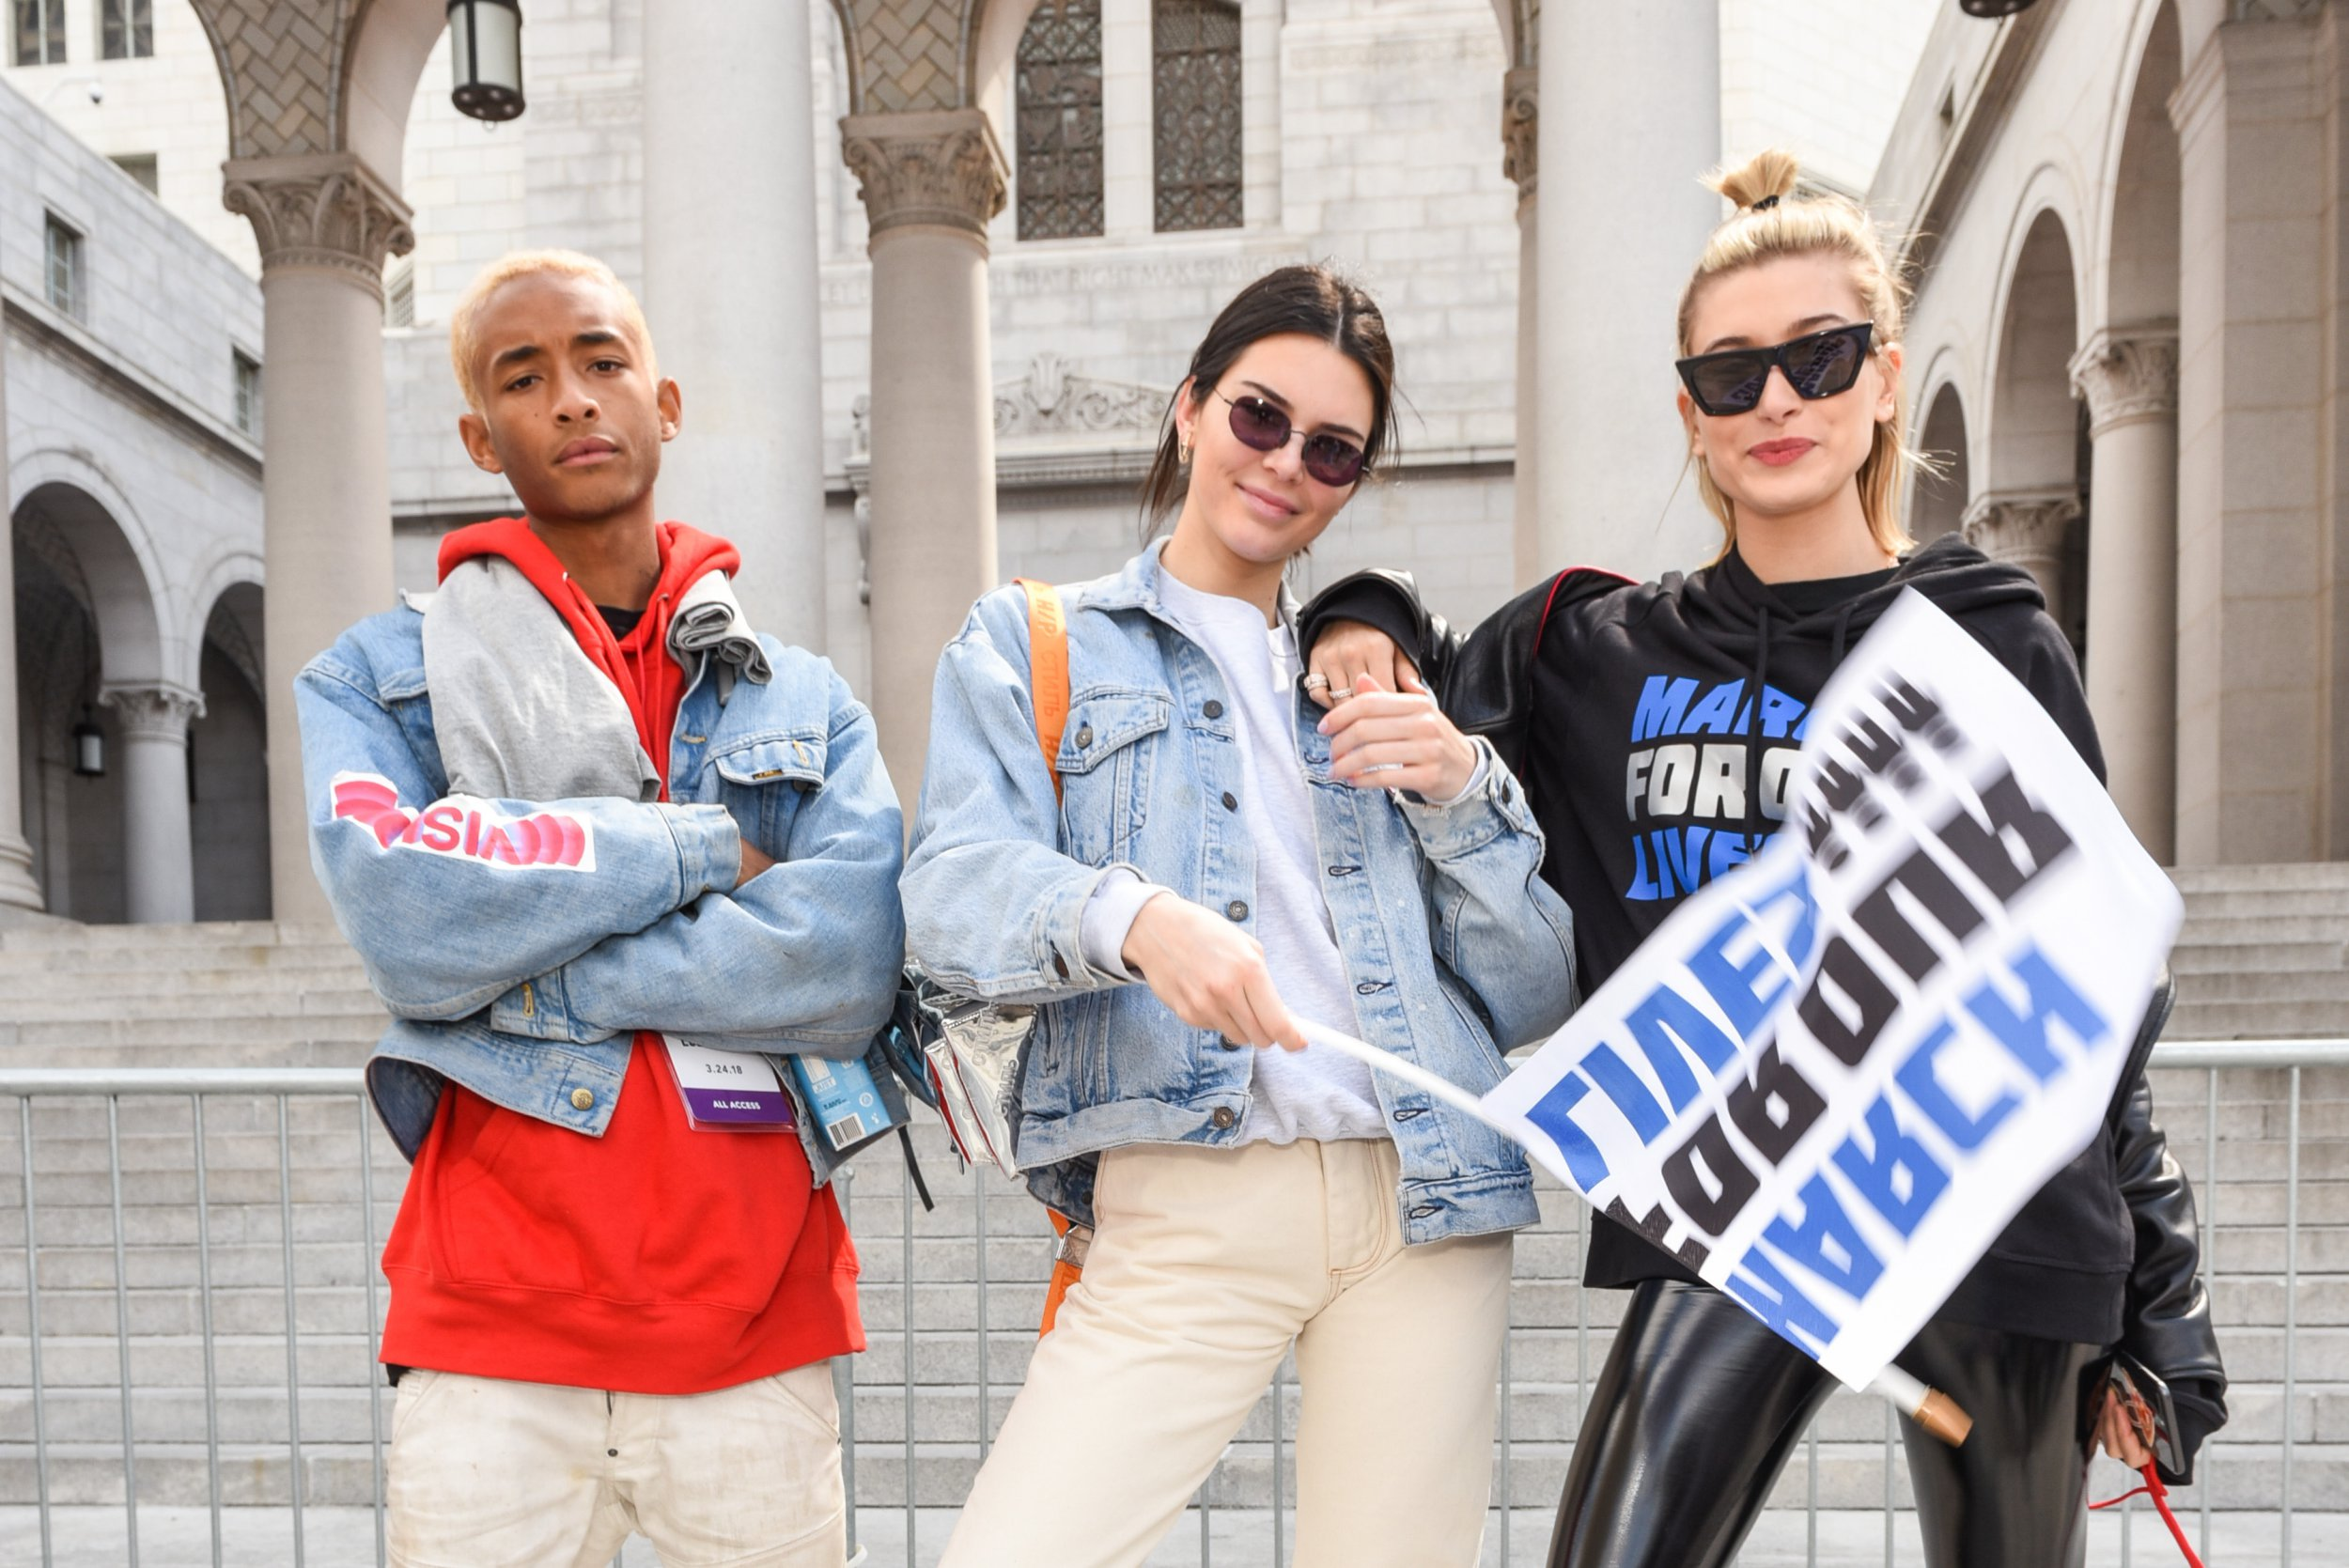 Kendall Jenner, Jaden Smith and Hailey Baldwin support tighter gun control at March For Our Lives